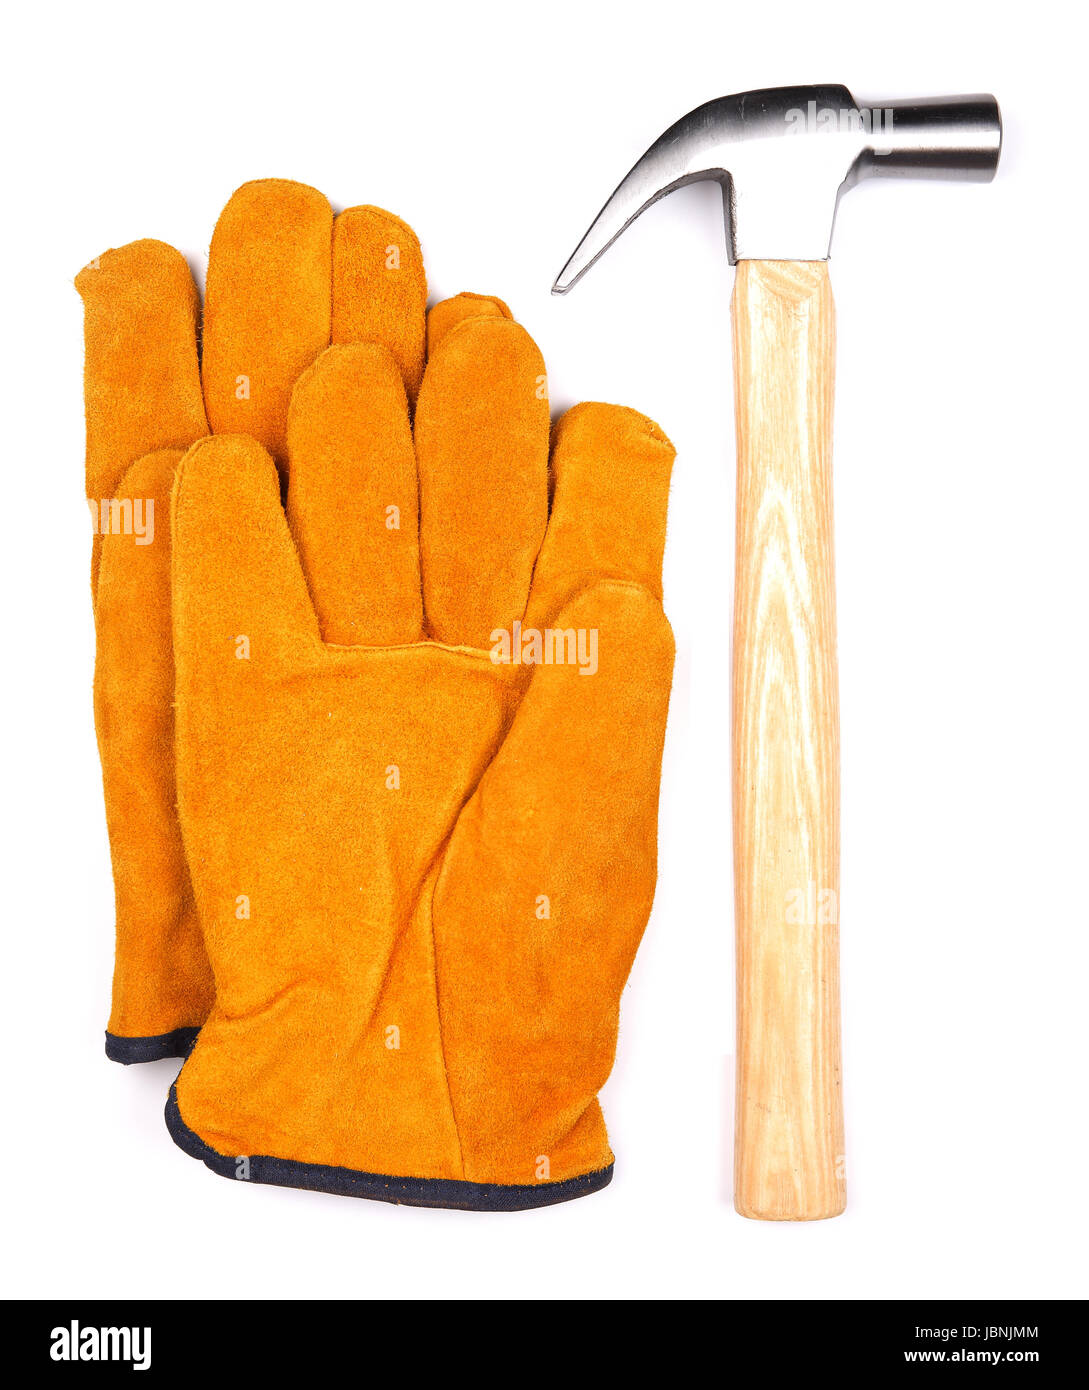 The Hammer tool with orange suede working gloves isolated on a white background - Stock Image